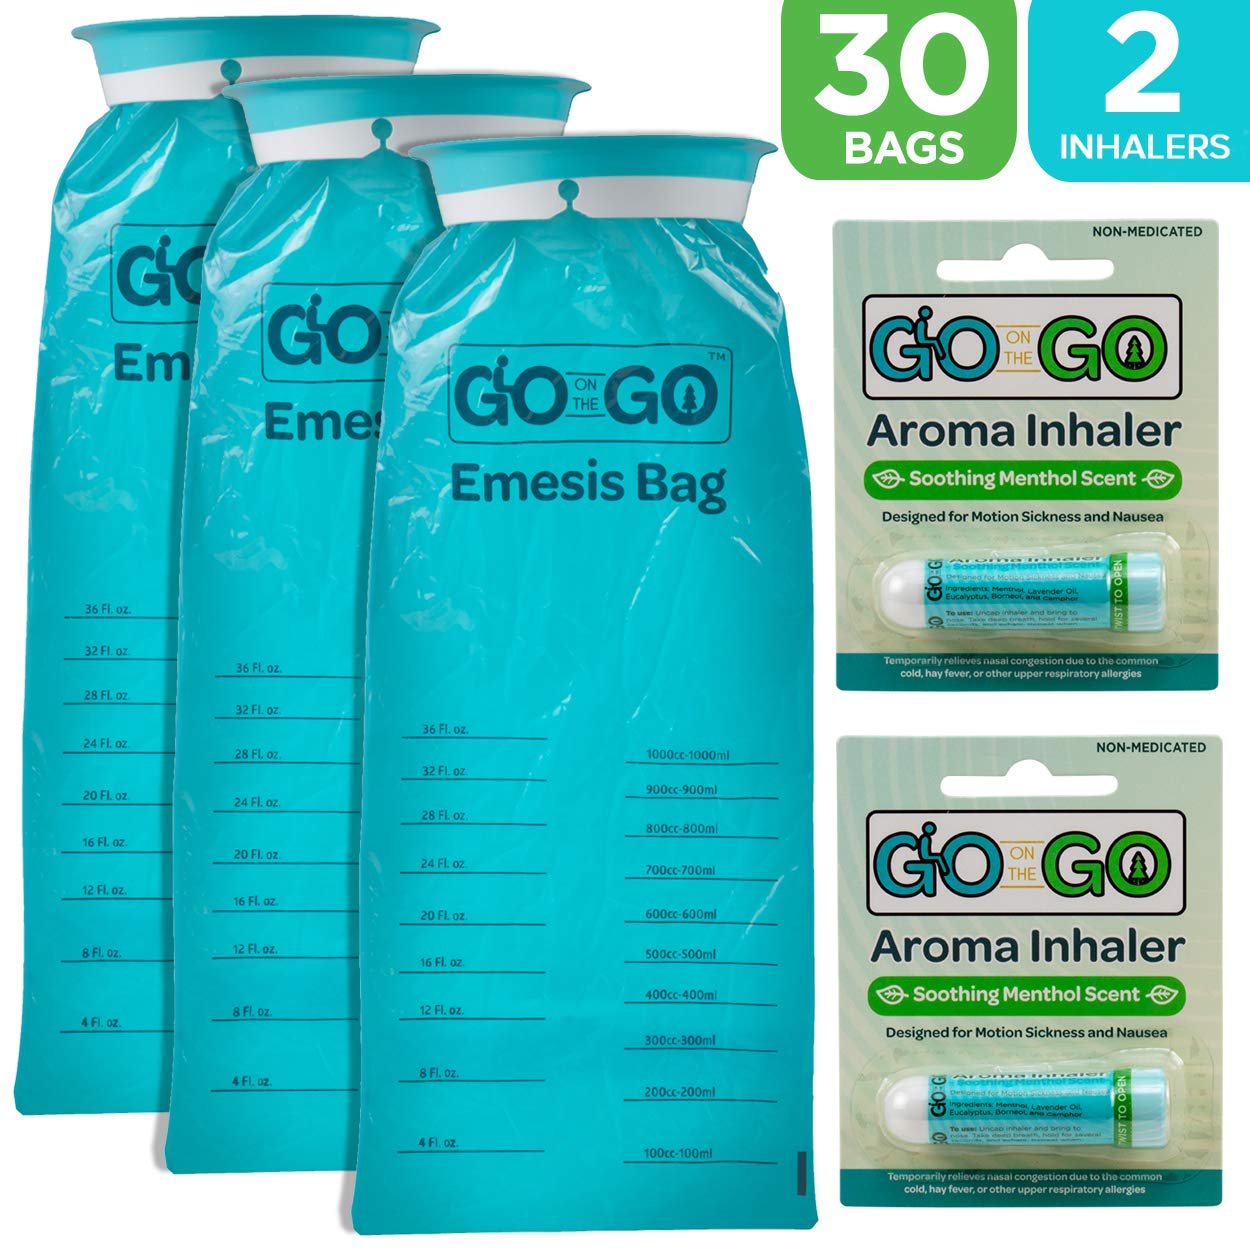 Disposable Emesis Vomit Bags with Aromatherapy Inhalers by Go on the Go - for Morning Sickness and Nausea Relief - 30 Vomit Bags and 2 Inhalers, Great for Medical, Home, Travel, Car, Plane and Boat by GO ON THE GO